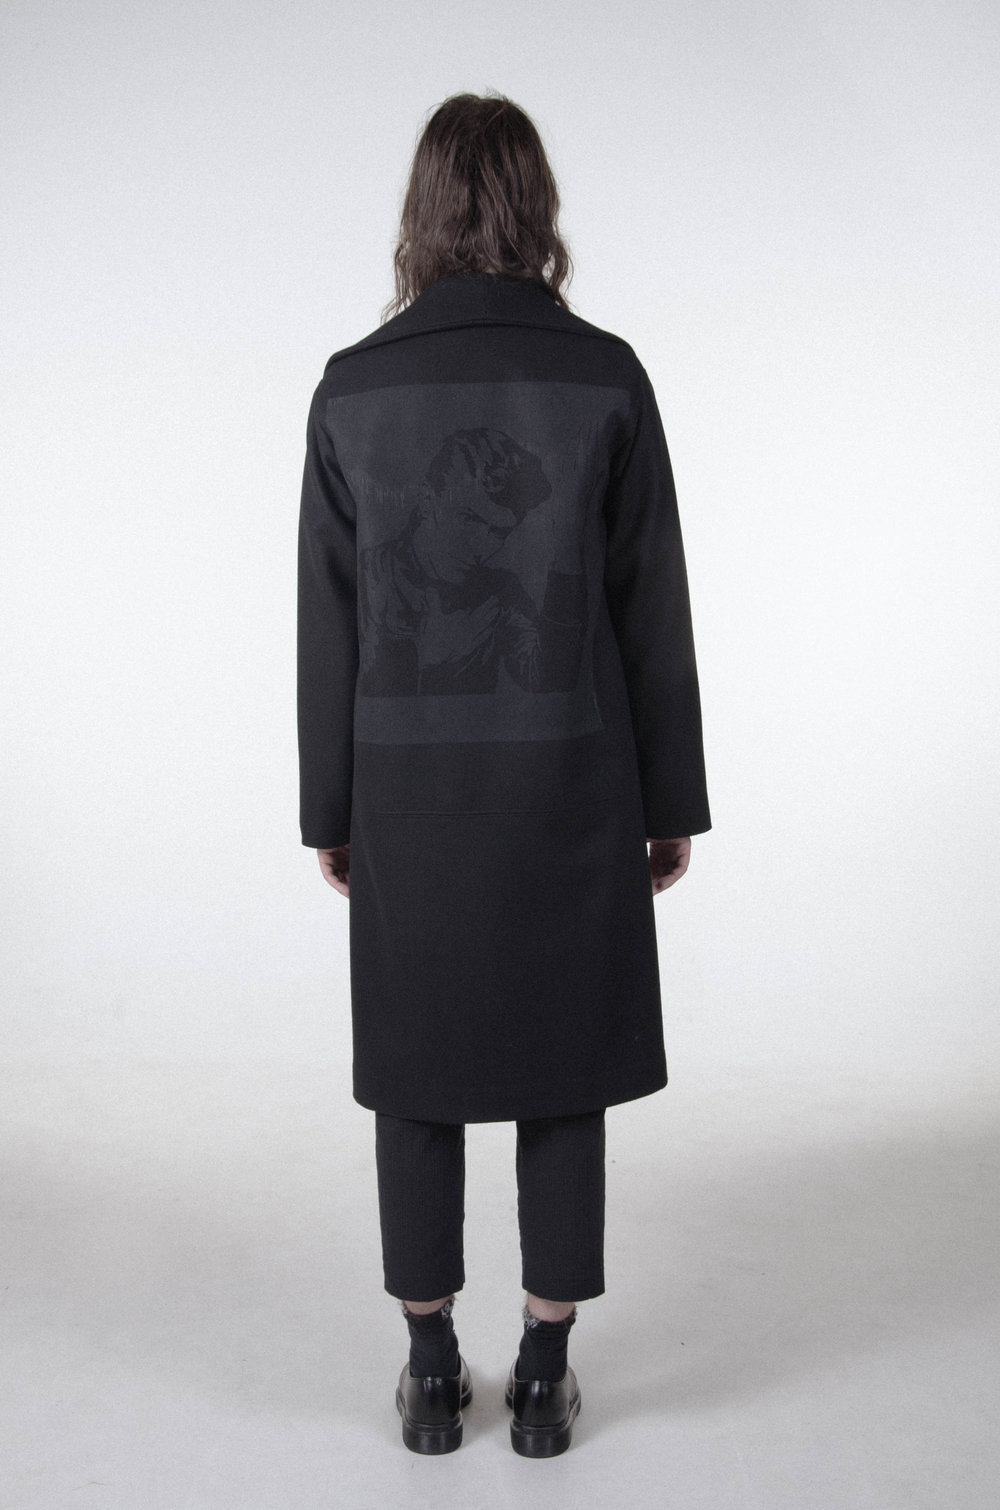 britt-pooley-elongated-lapel-the-next-day-bowie-coat-agoraphobia-collective